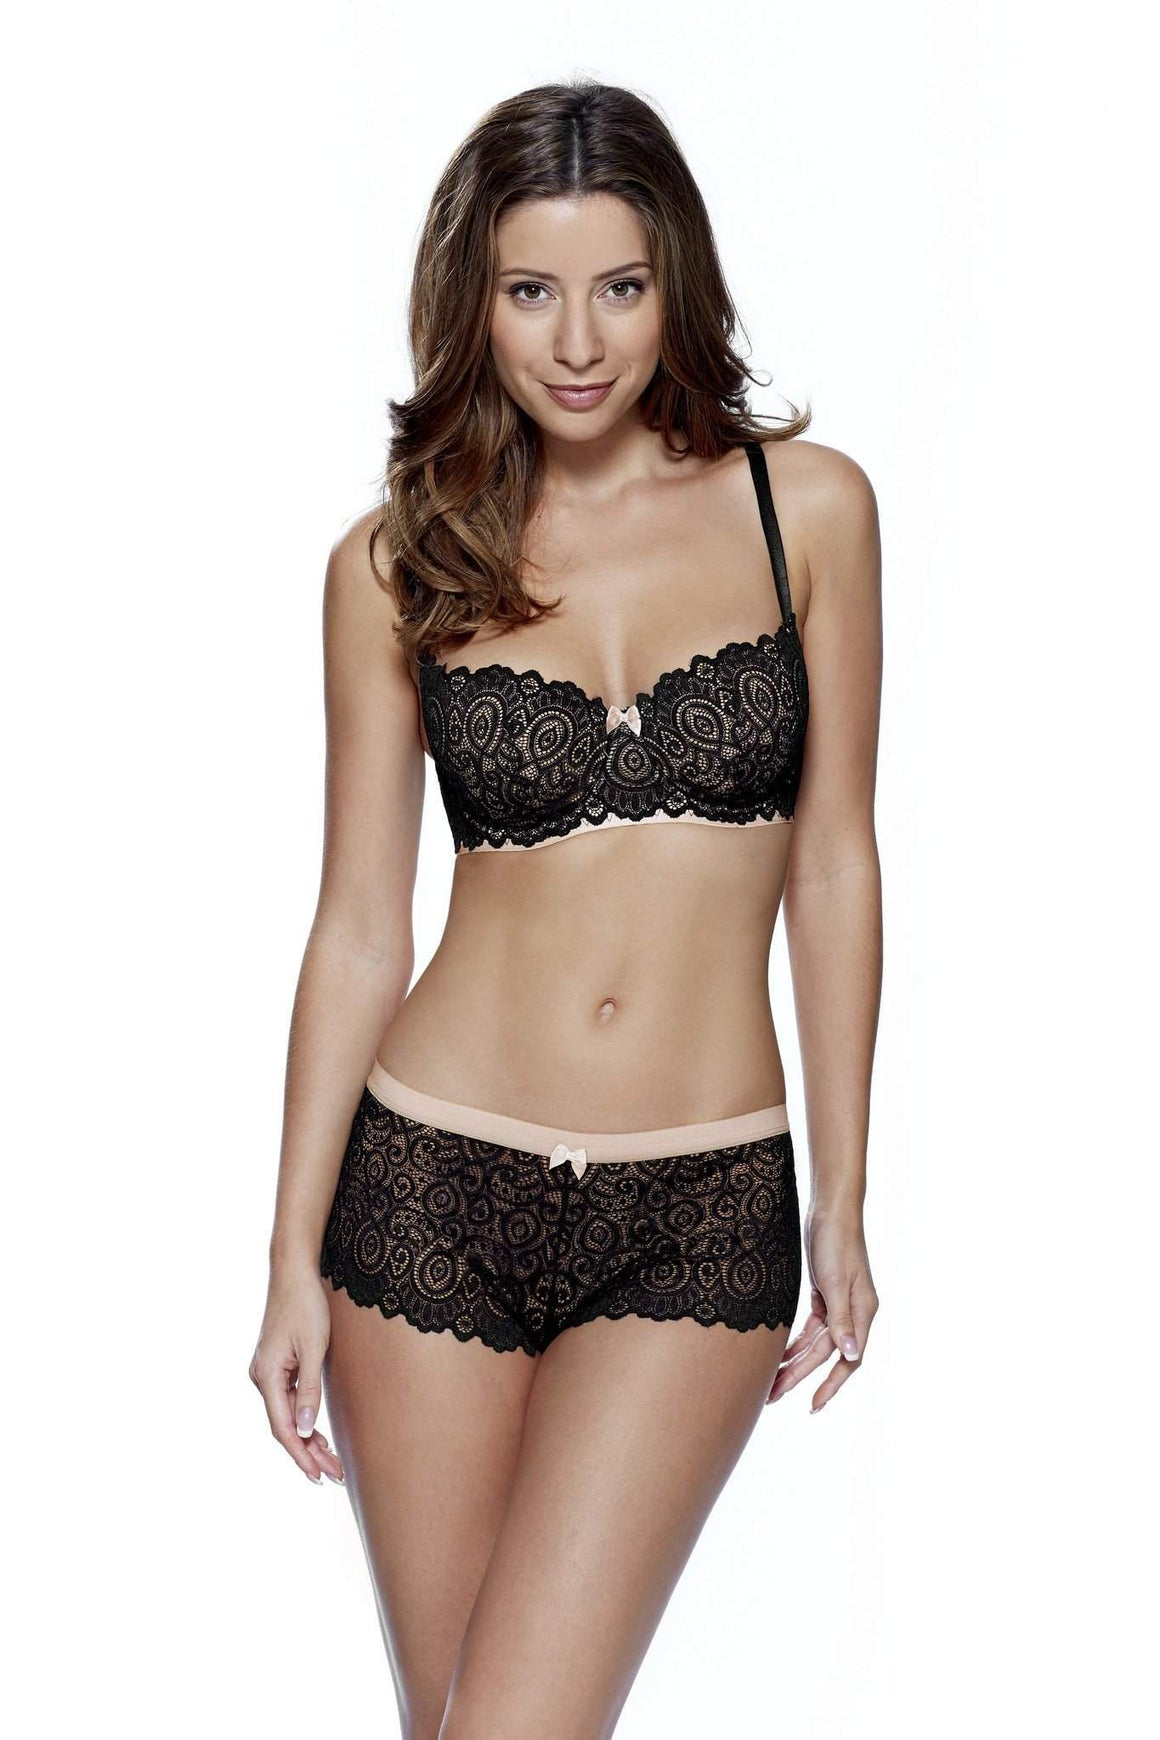 Matilda Balcony Bra in Black/Nude by Lepel - Charnos / Lepel - Katys Boutique Lingerie USA